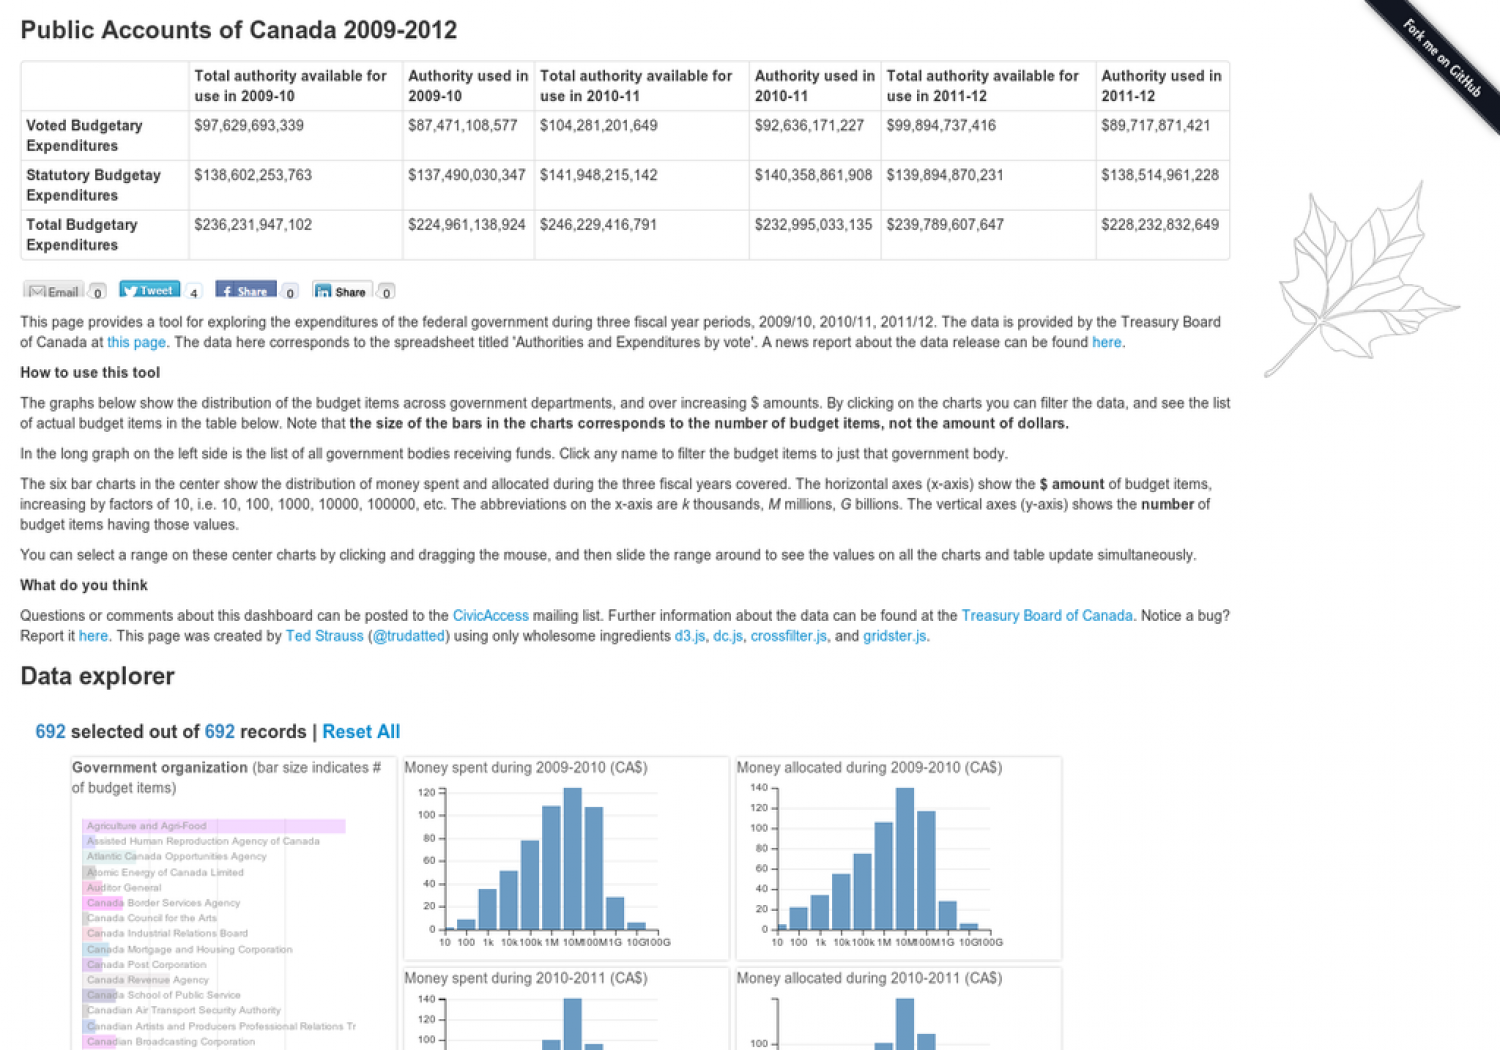 Data Explorer for Public Accounts of Canada 2009-2012 Infographic